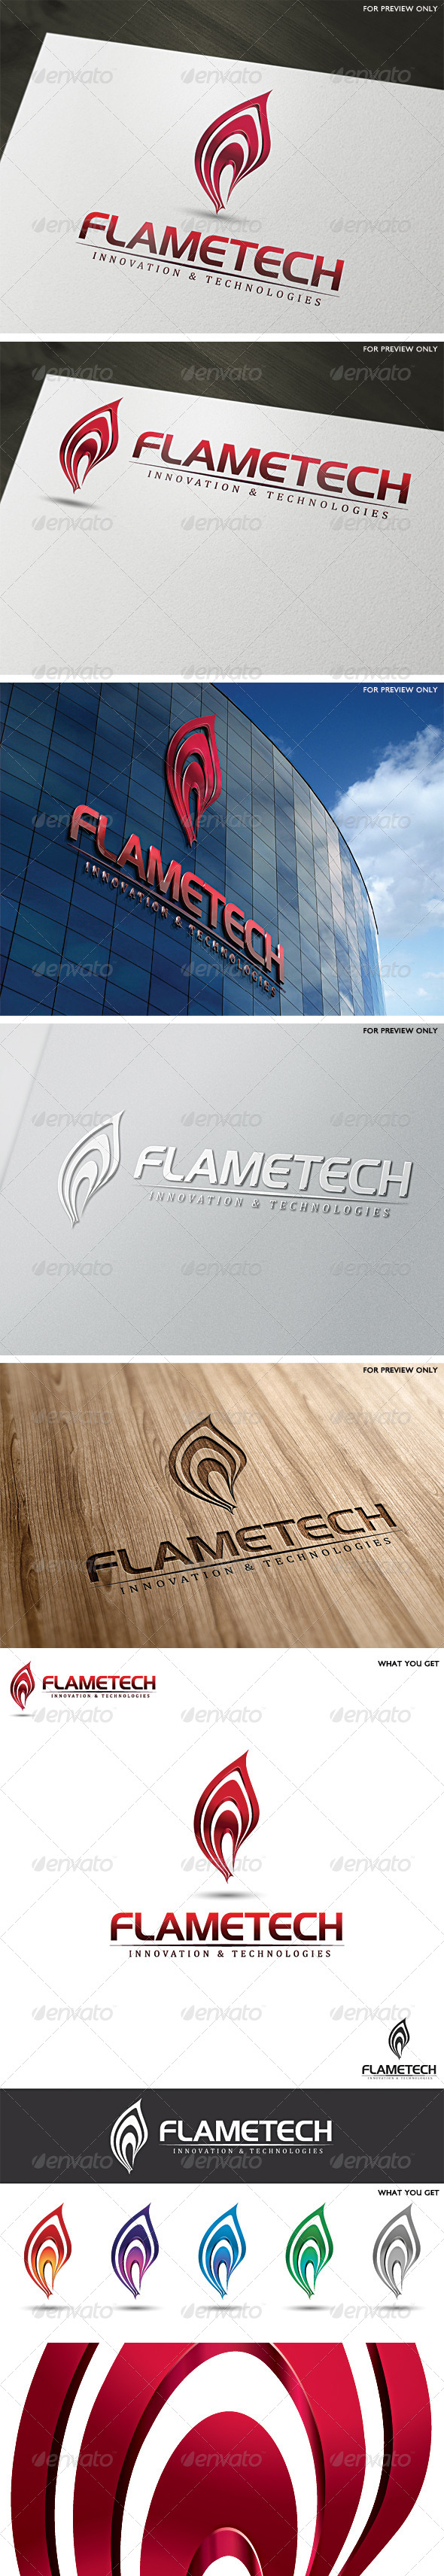 3D Fire Flame Logo Template - 3d Abstract